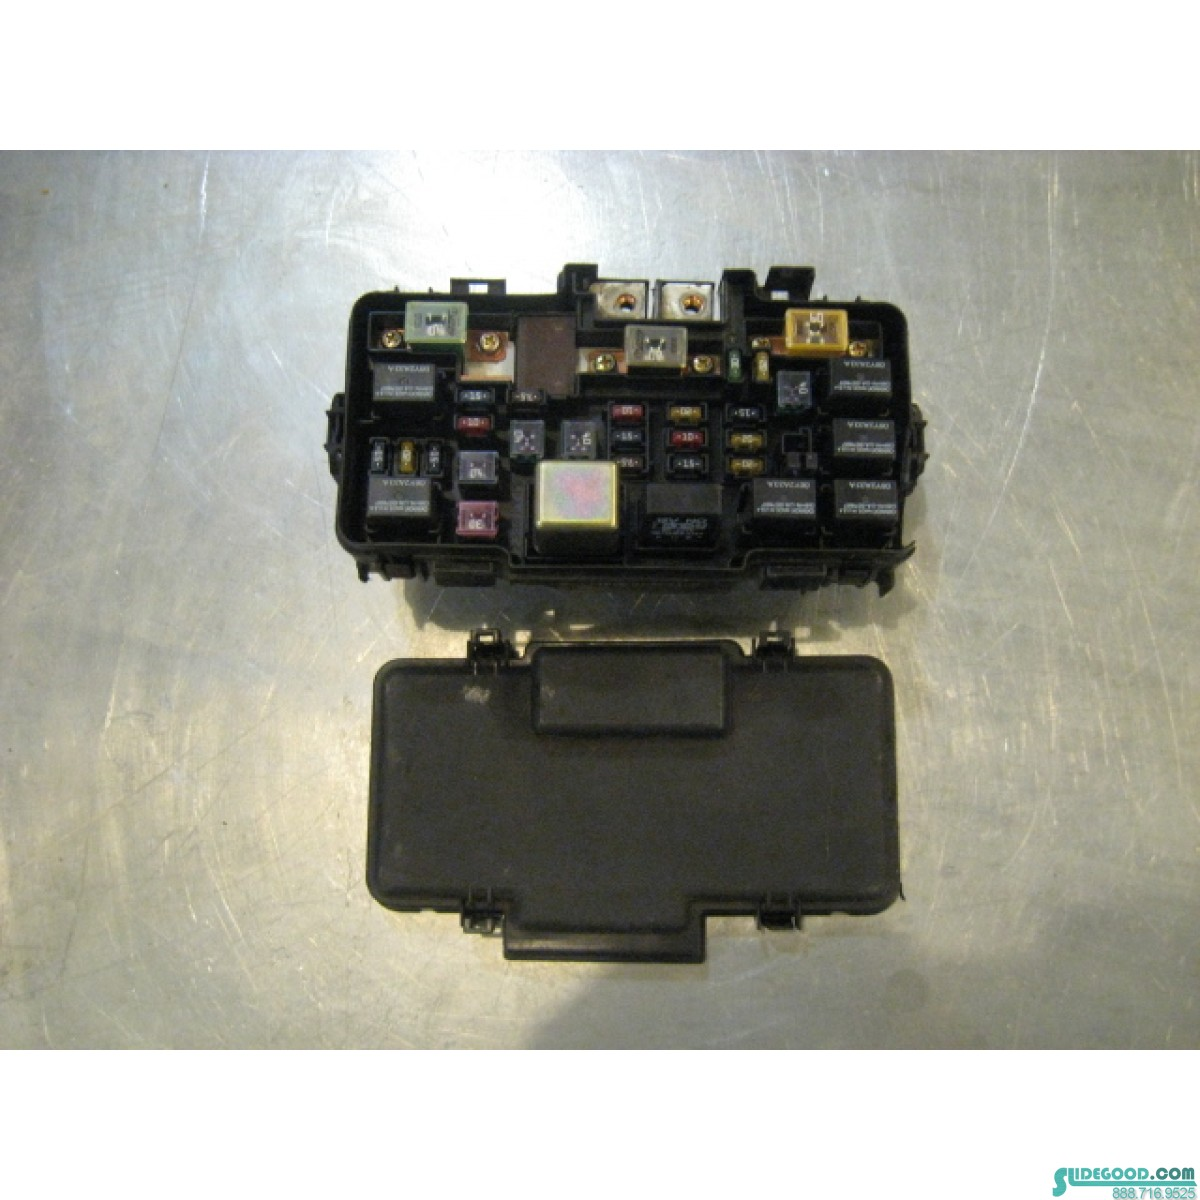 Engine Bay Fuse Box 03 Honda Civic R15593